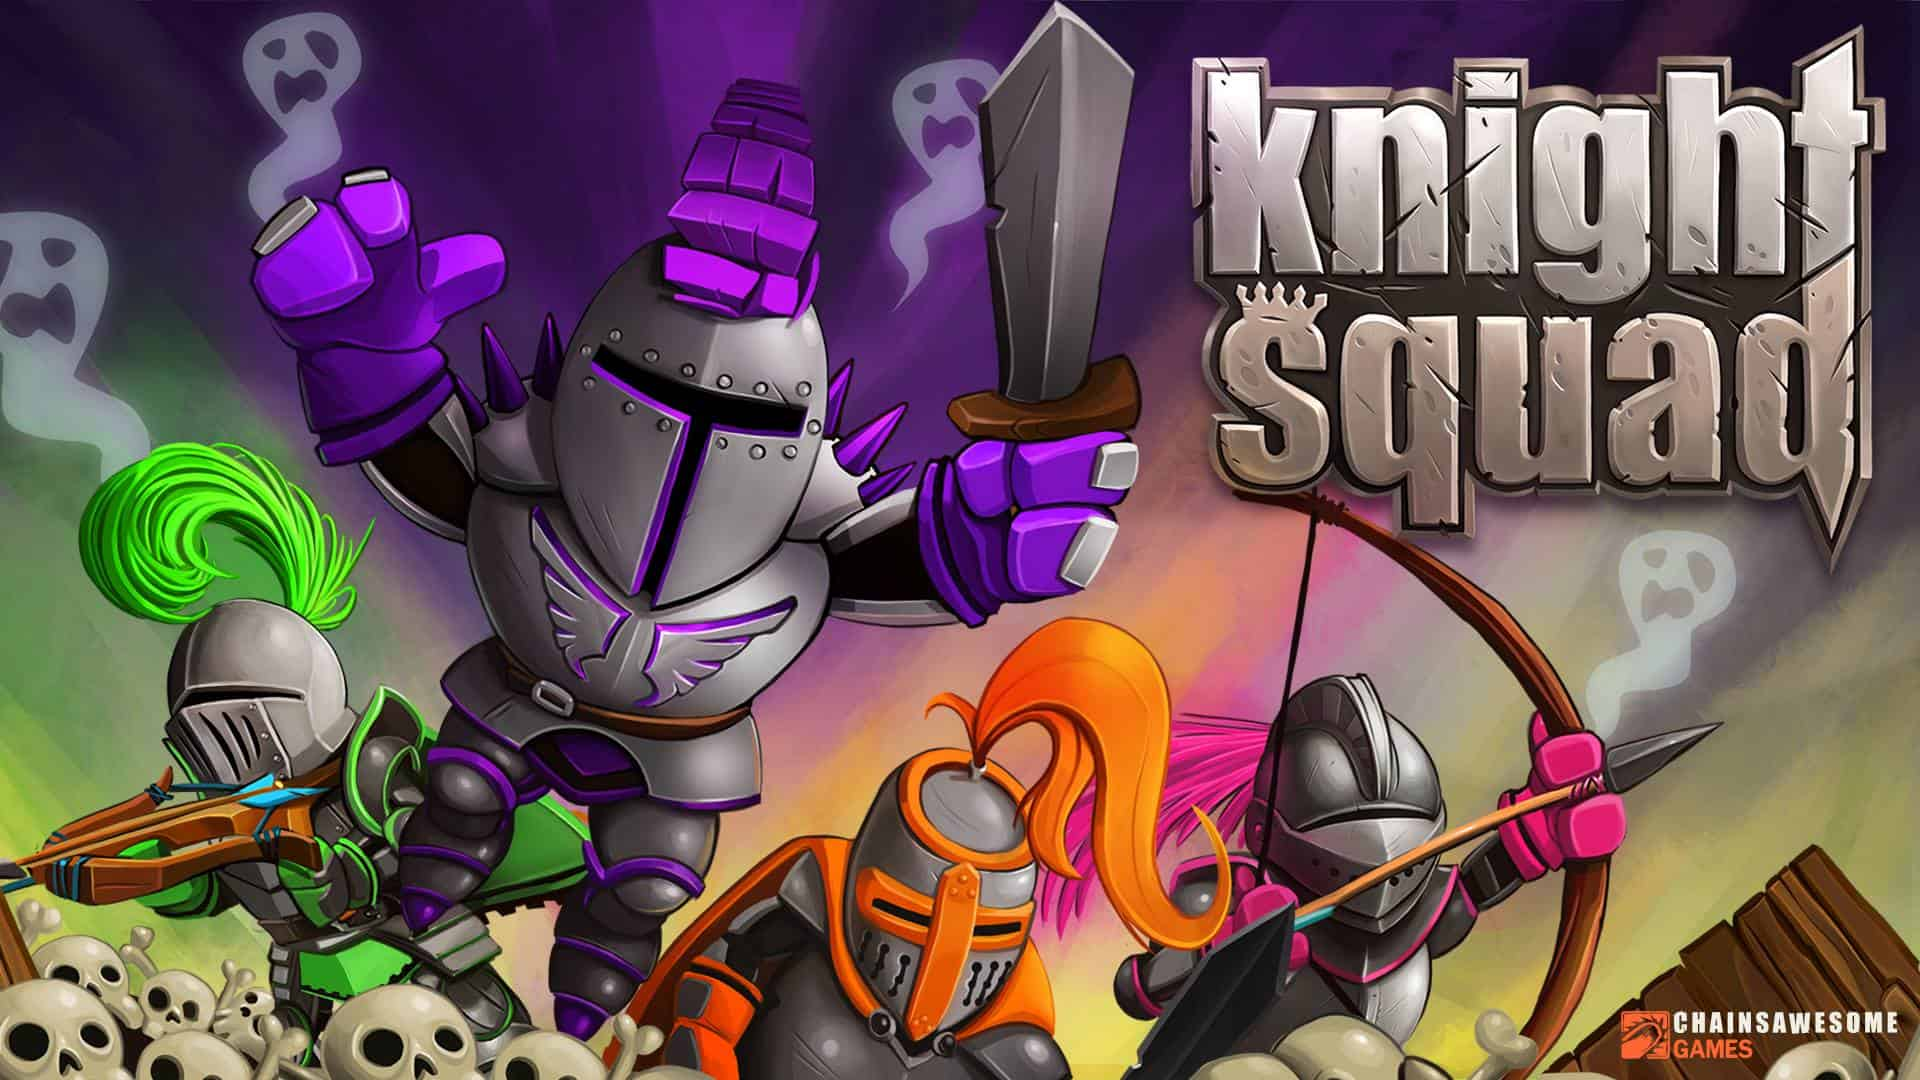 Game Review: Knight Squad (Xbox One)